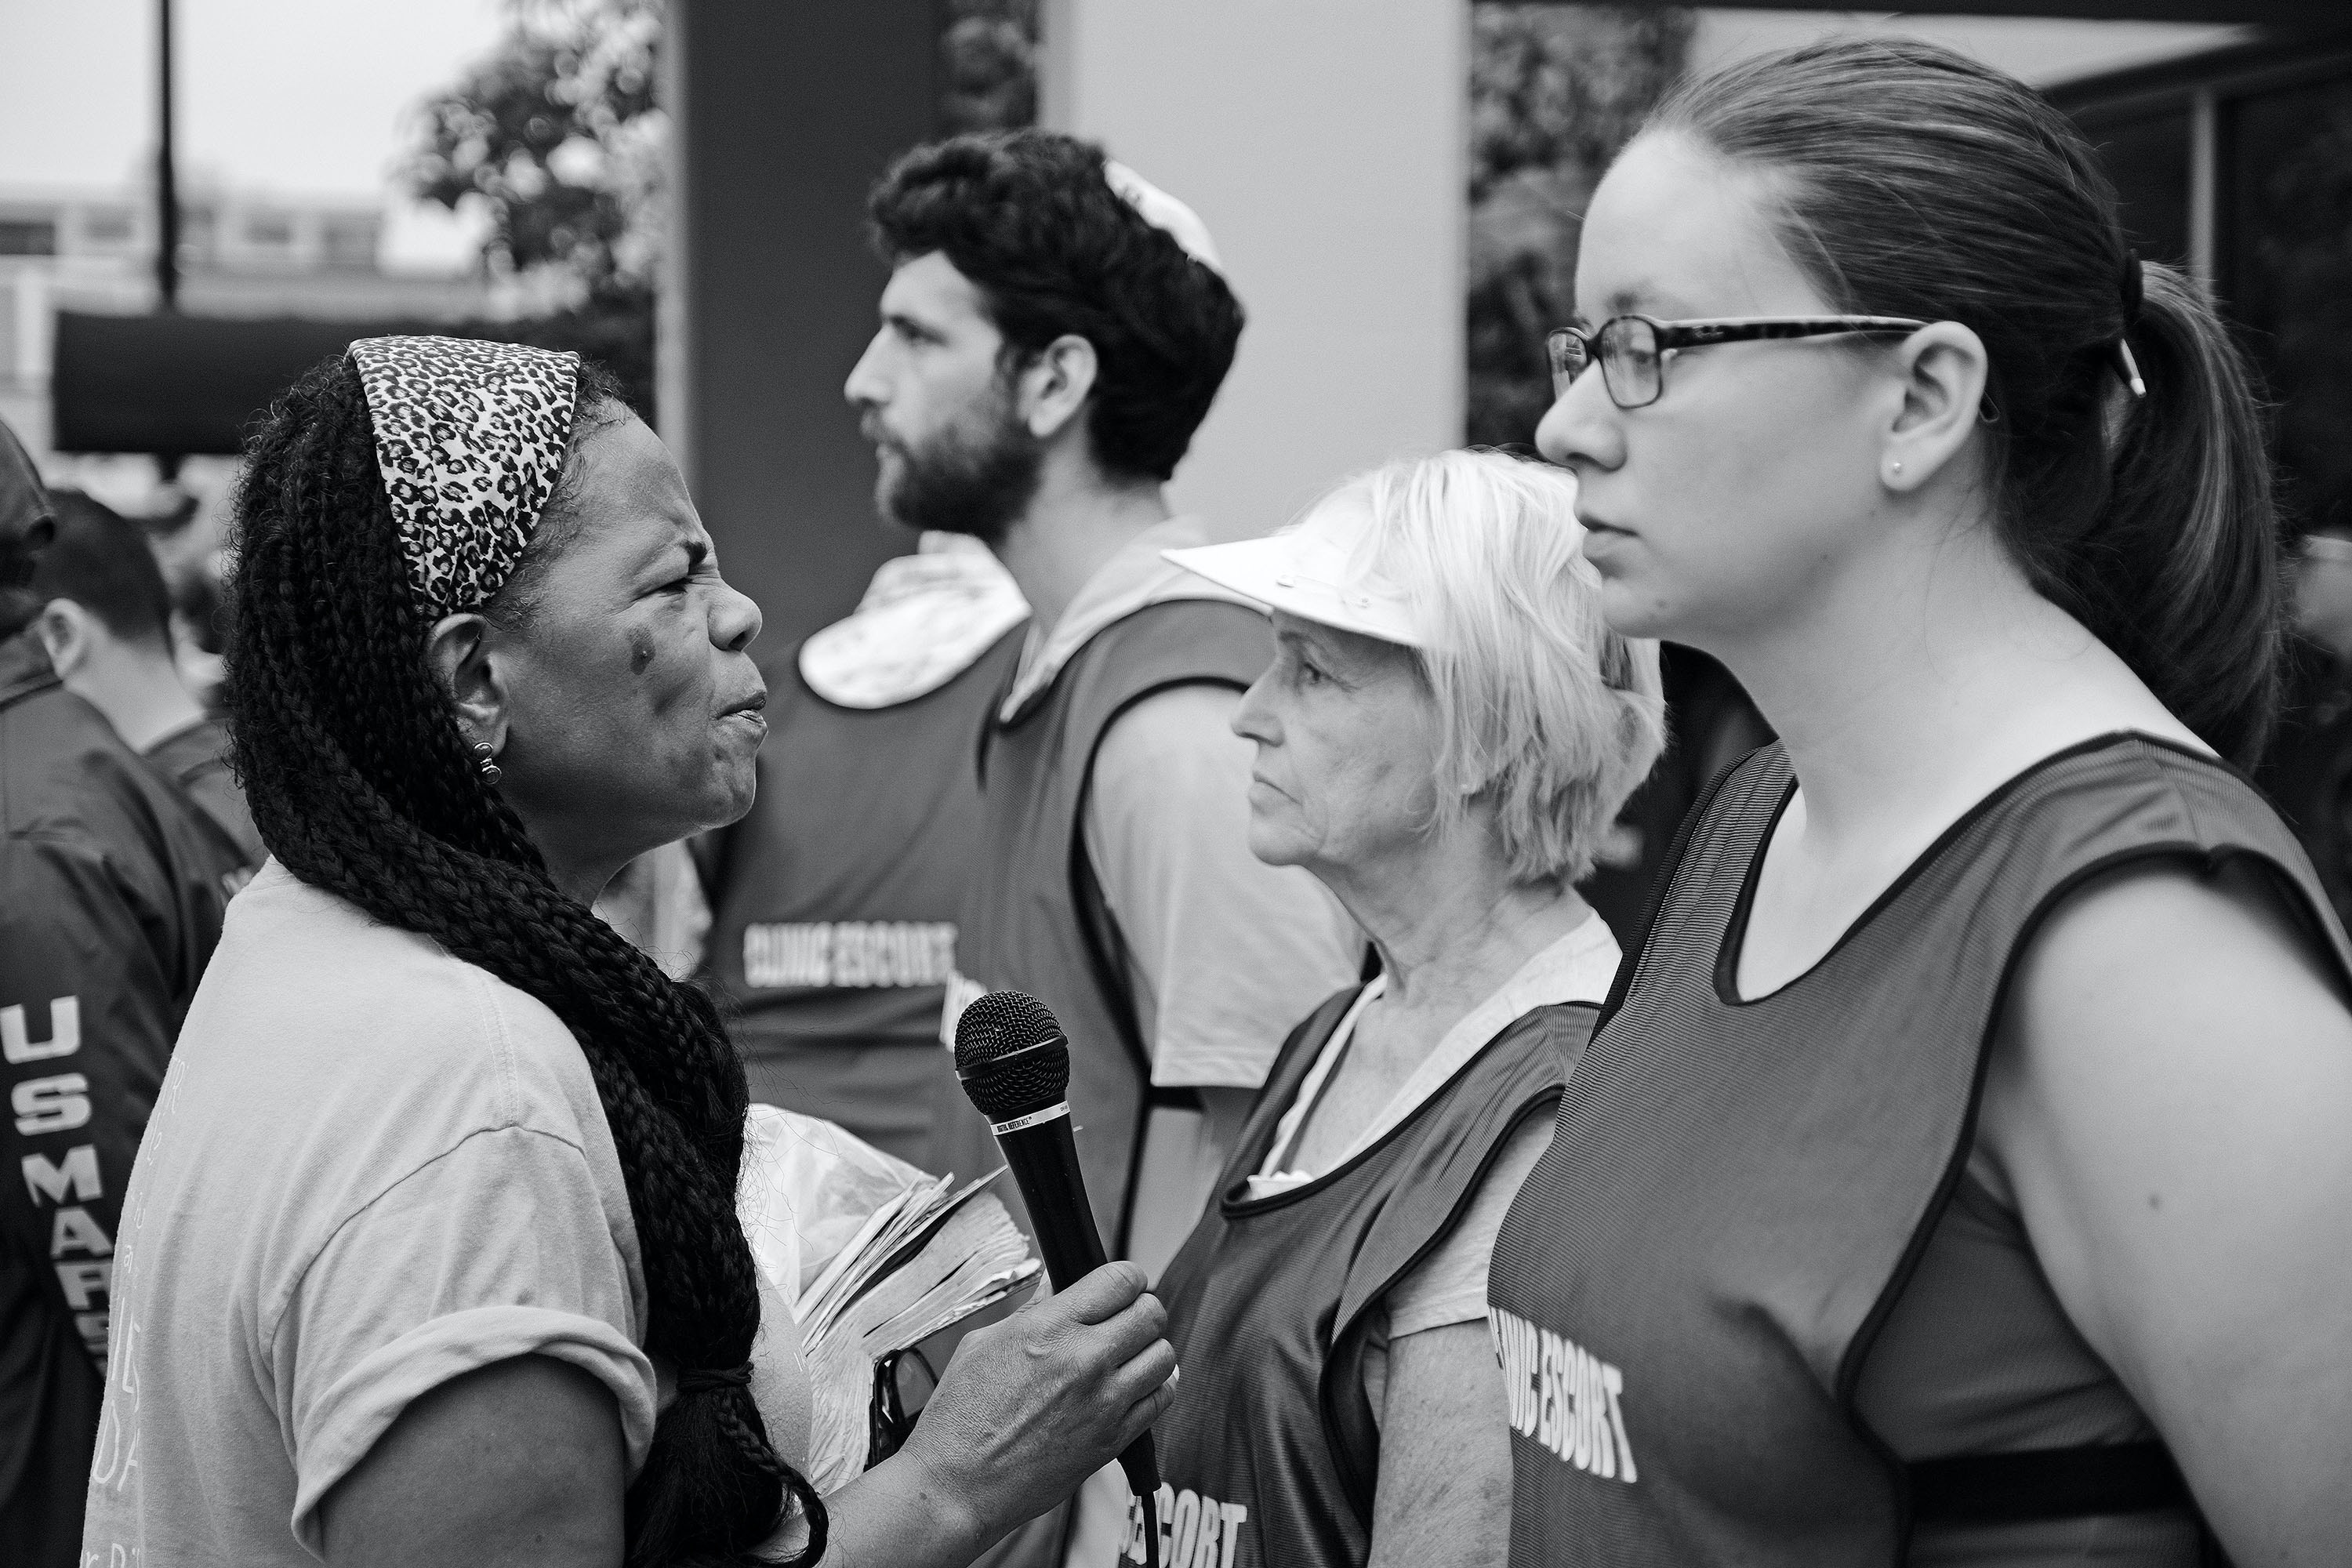 A protester from Sisters for Life uses a speaker system to berate clinic escorts and yell at clients through the walls of EMW Clinic. The clinic escorts practice non-engagement tactics in response.